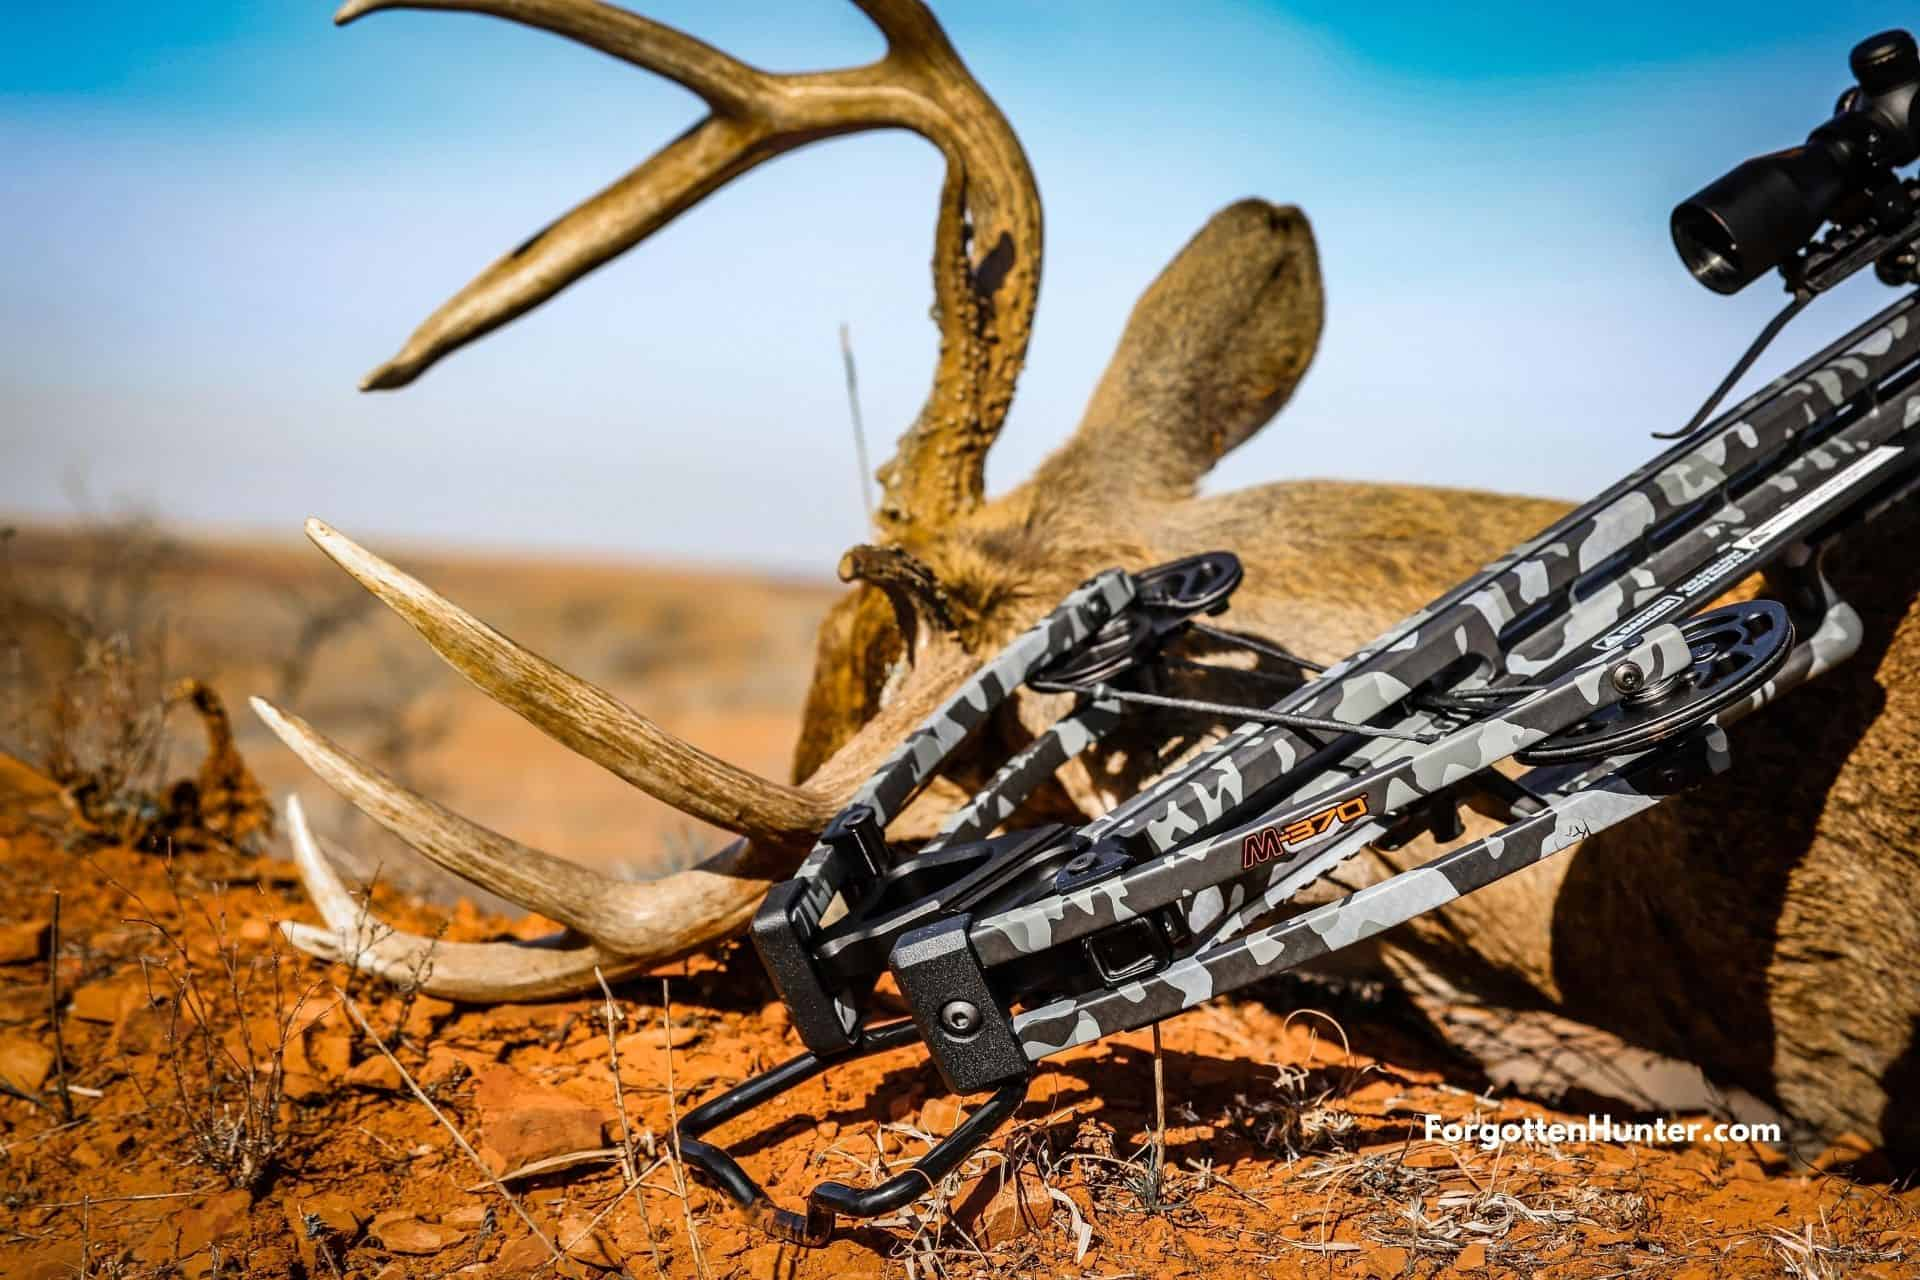 Wicked Ridge M370 Review - Lightweight and Accurate Crossbow